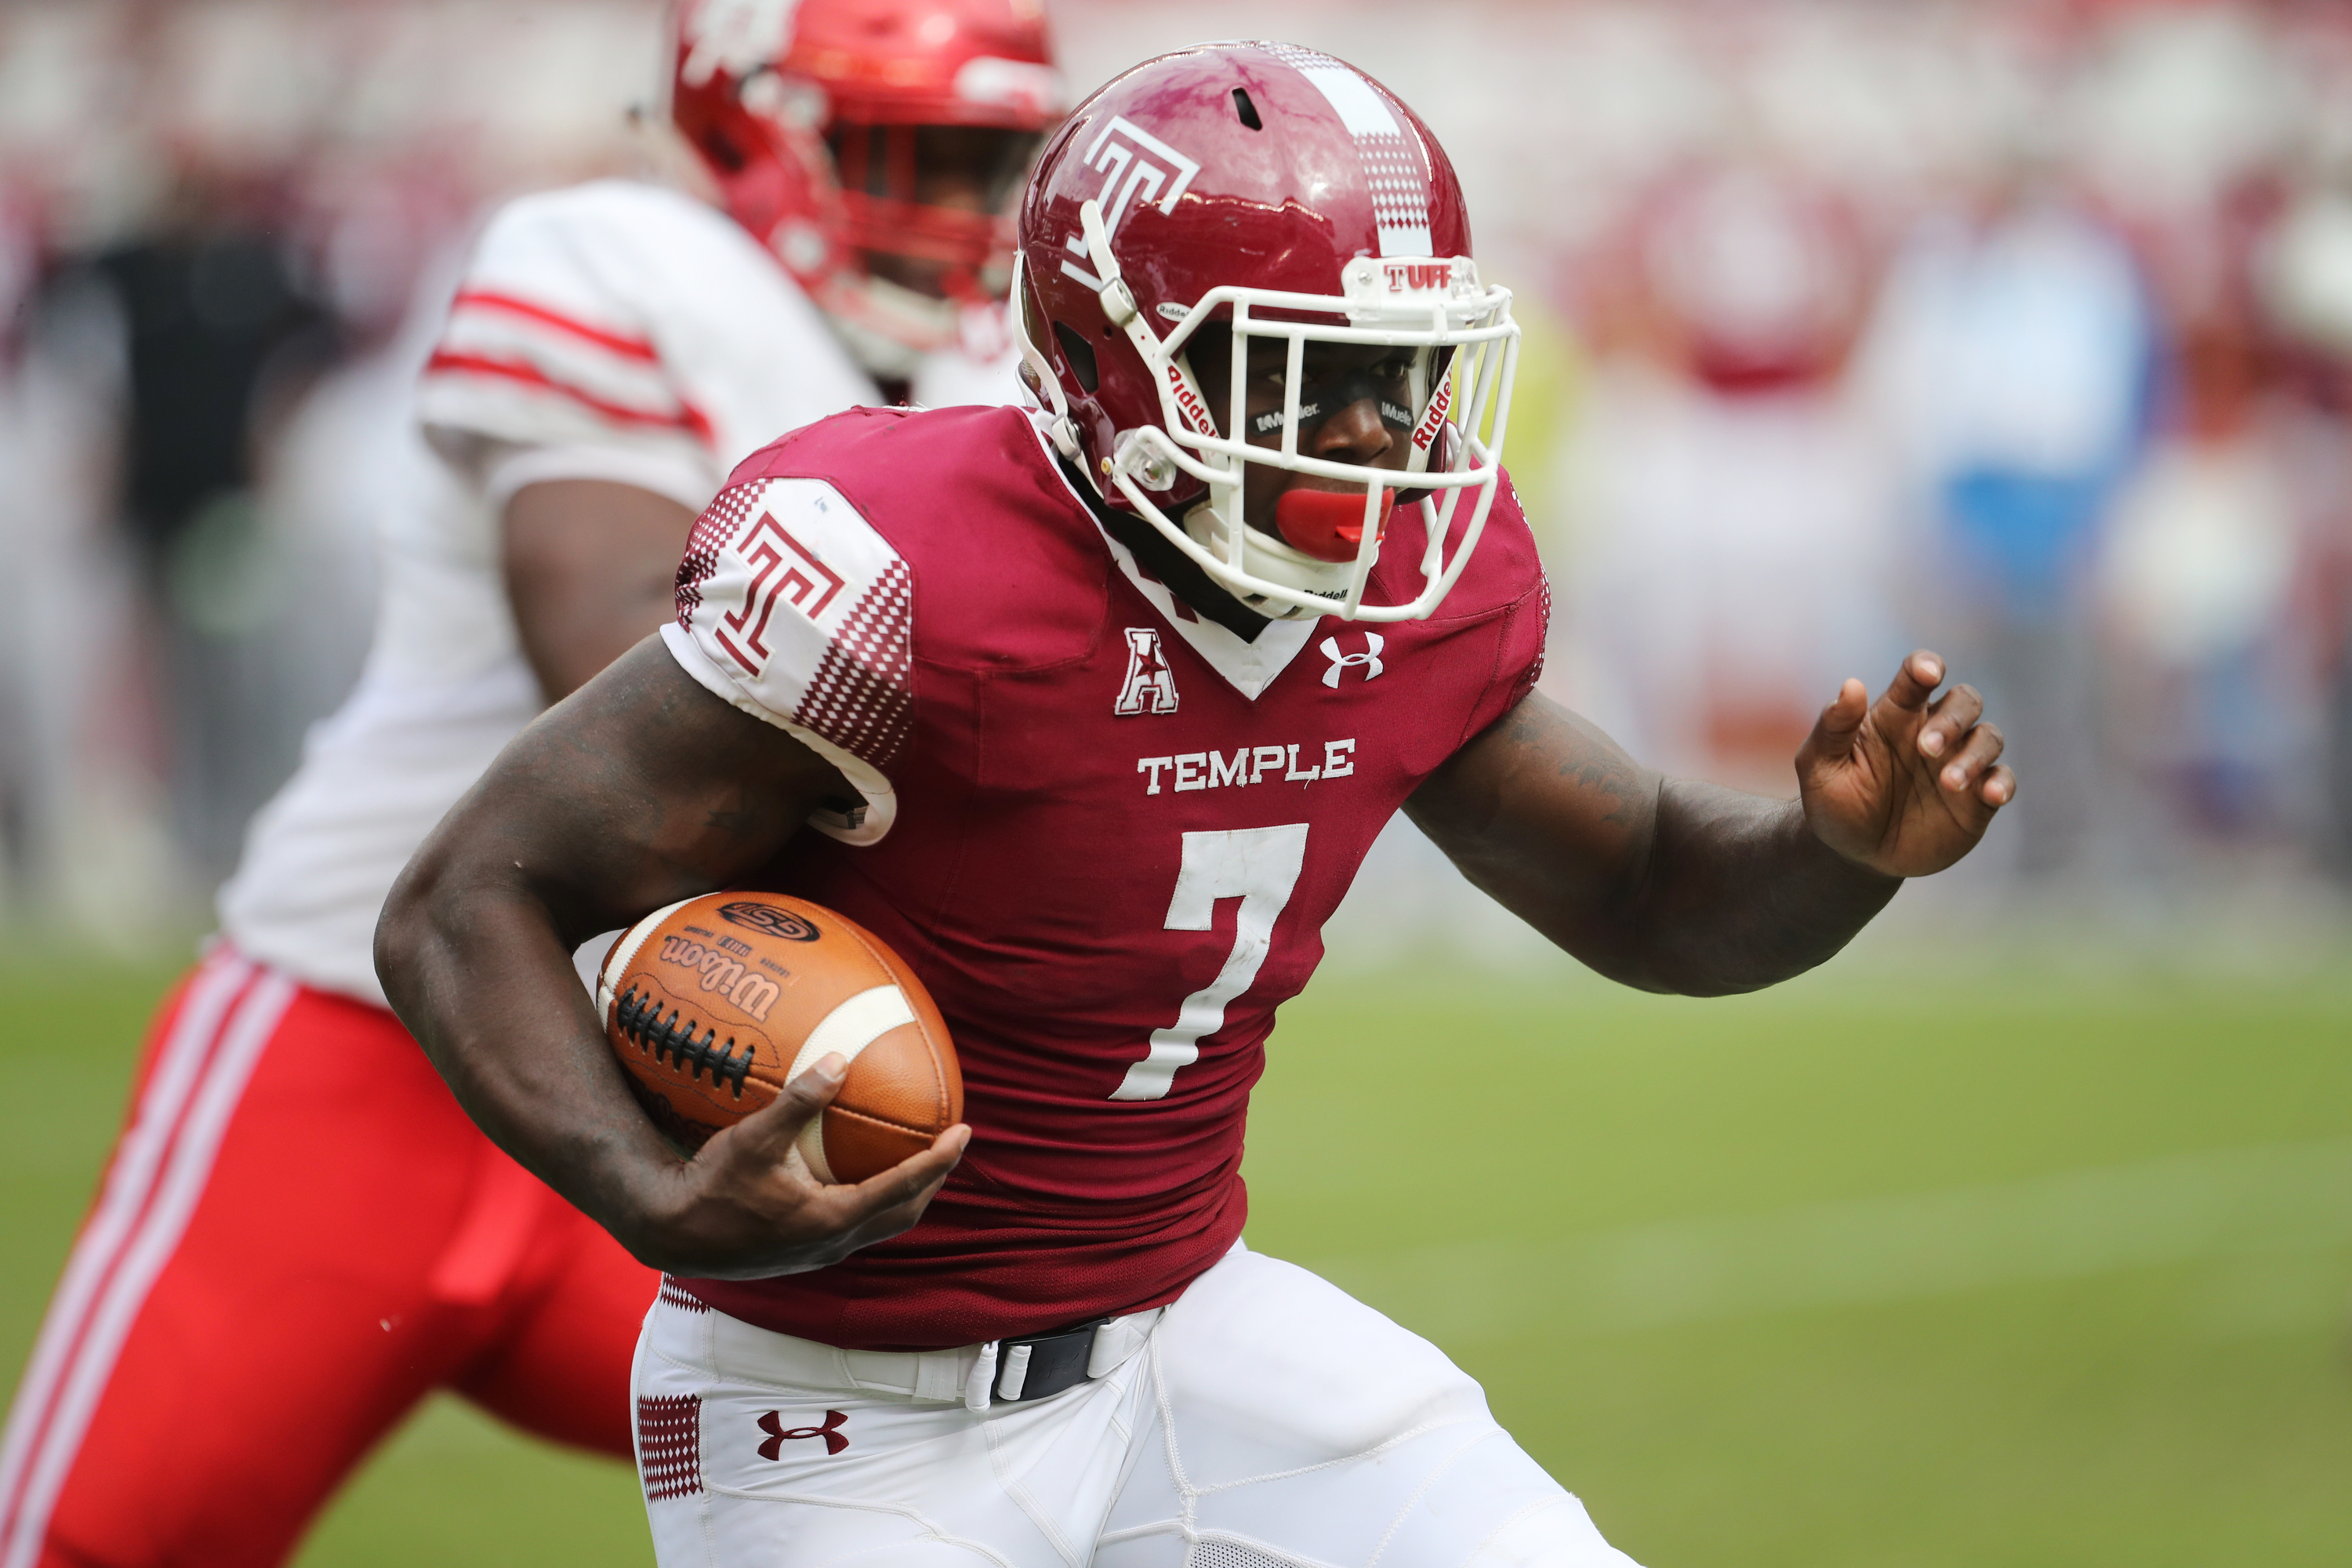 Ryquell Armstead carries the ball for a first down during a Temple Owls loss to the Houston Cougars 20-13 at the Linc Saturday September 30, 2017. DAVID SWANSON / Staff Photographer